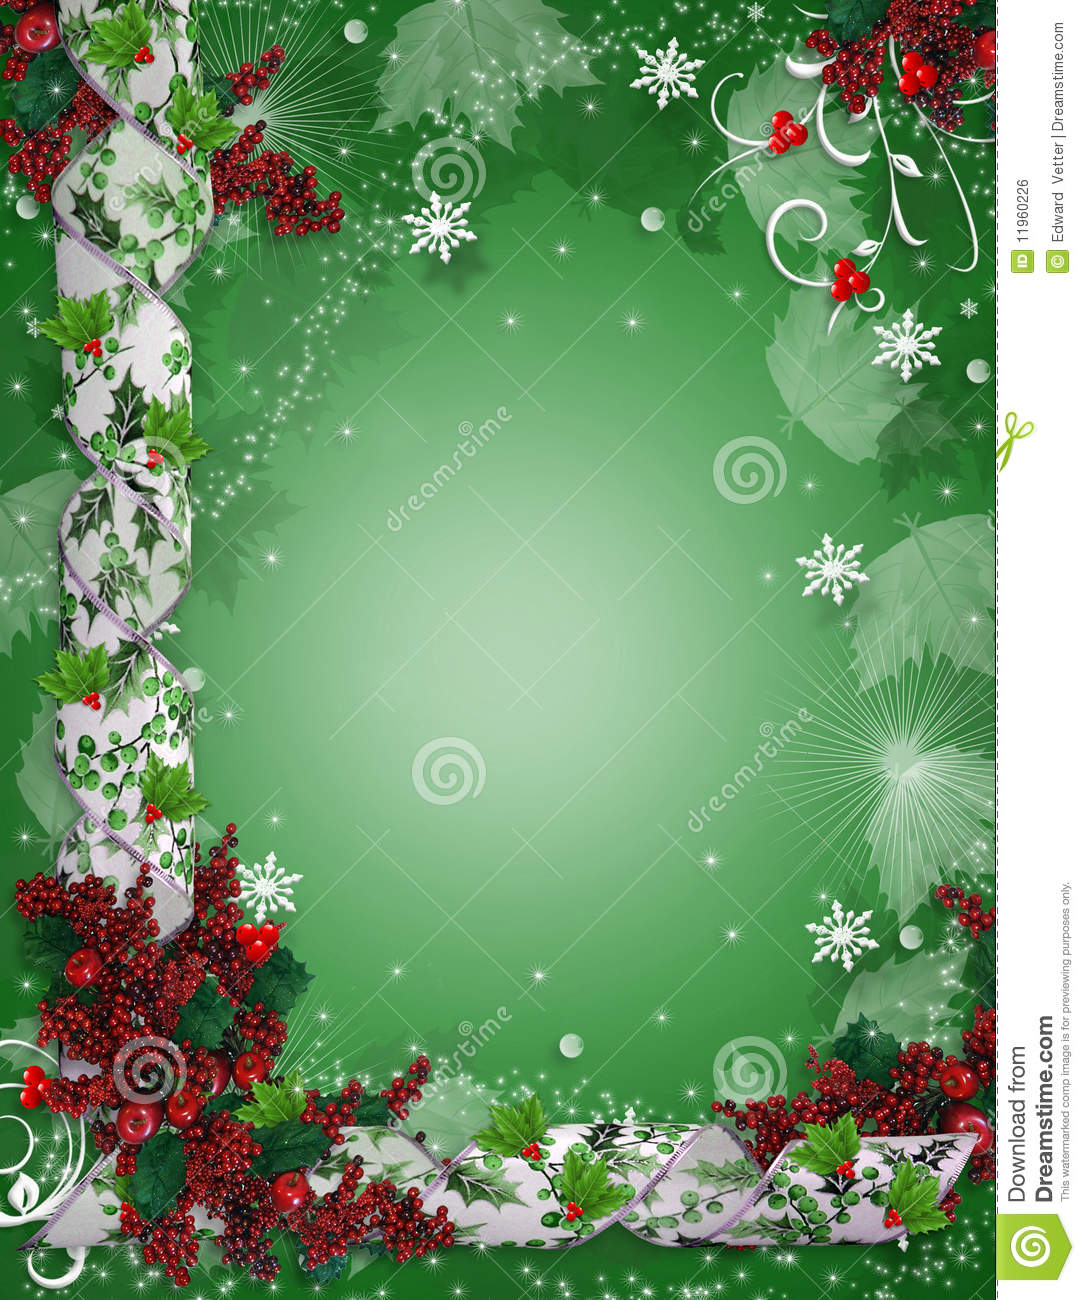 download christmas border ribbons elegant holly stock illustration illustration of delicate leaves 11960226